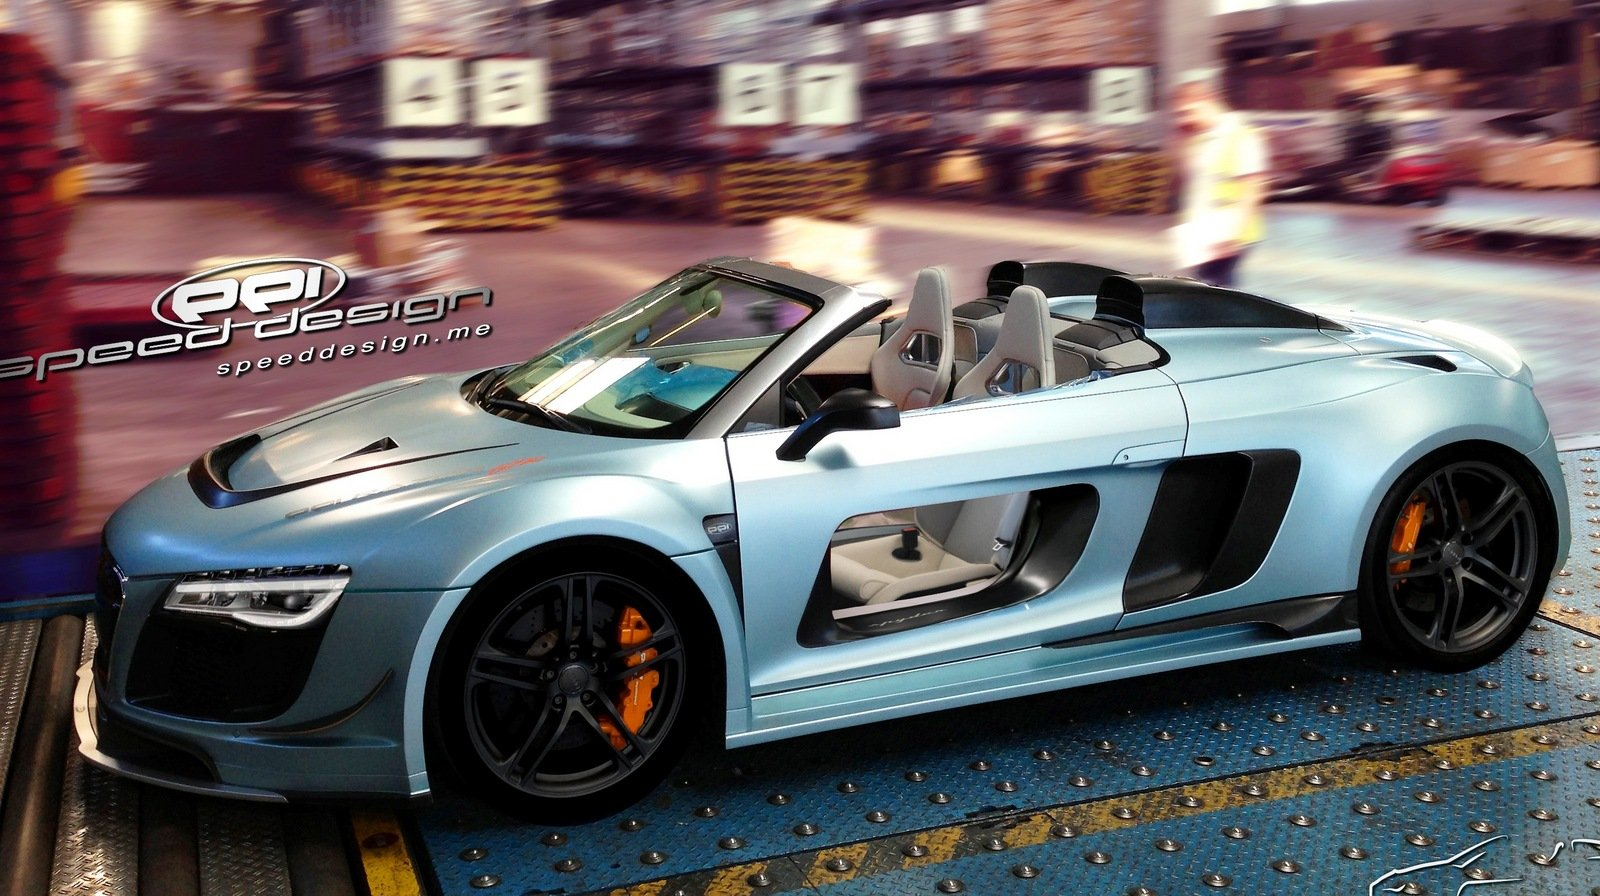 2013 Audi R8 Razor Spyder Gtr By Ppi Speed Design Pictures